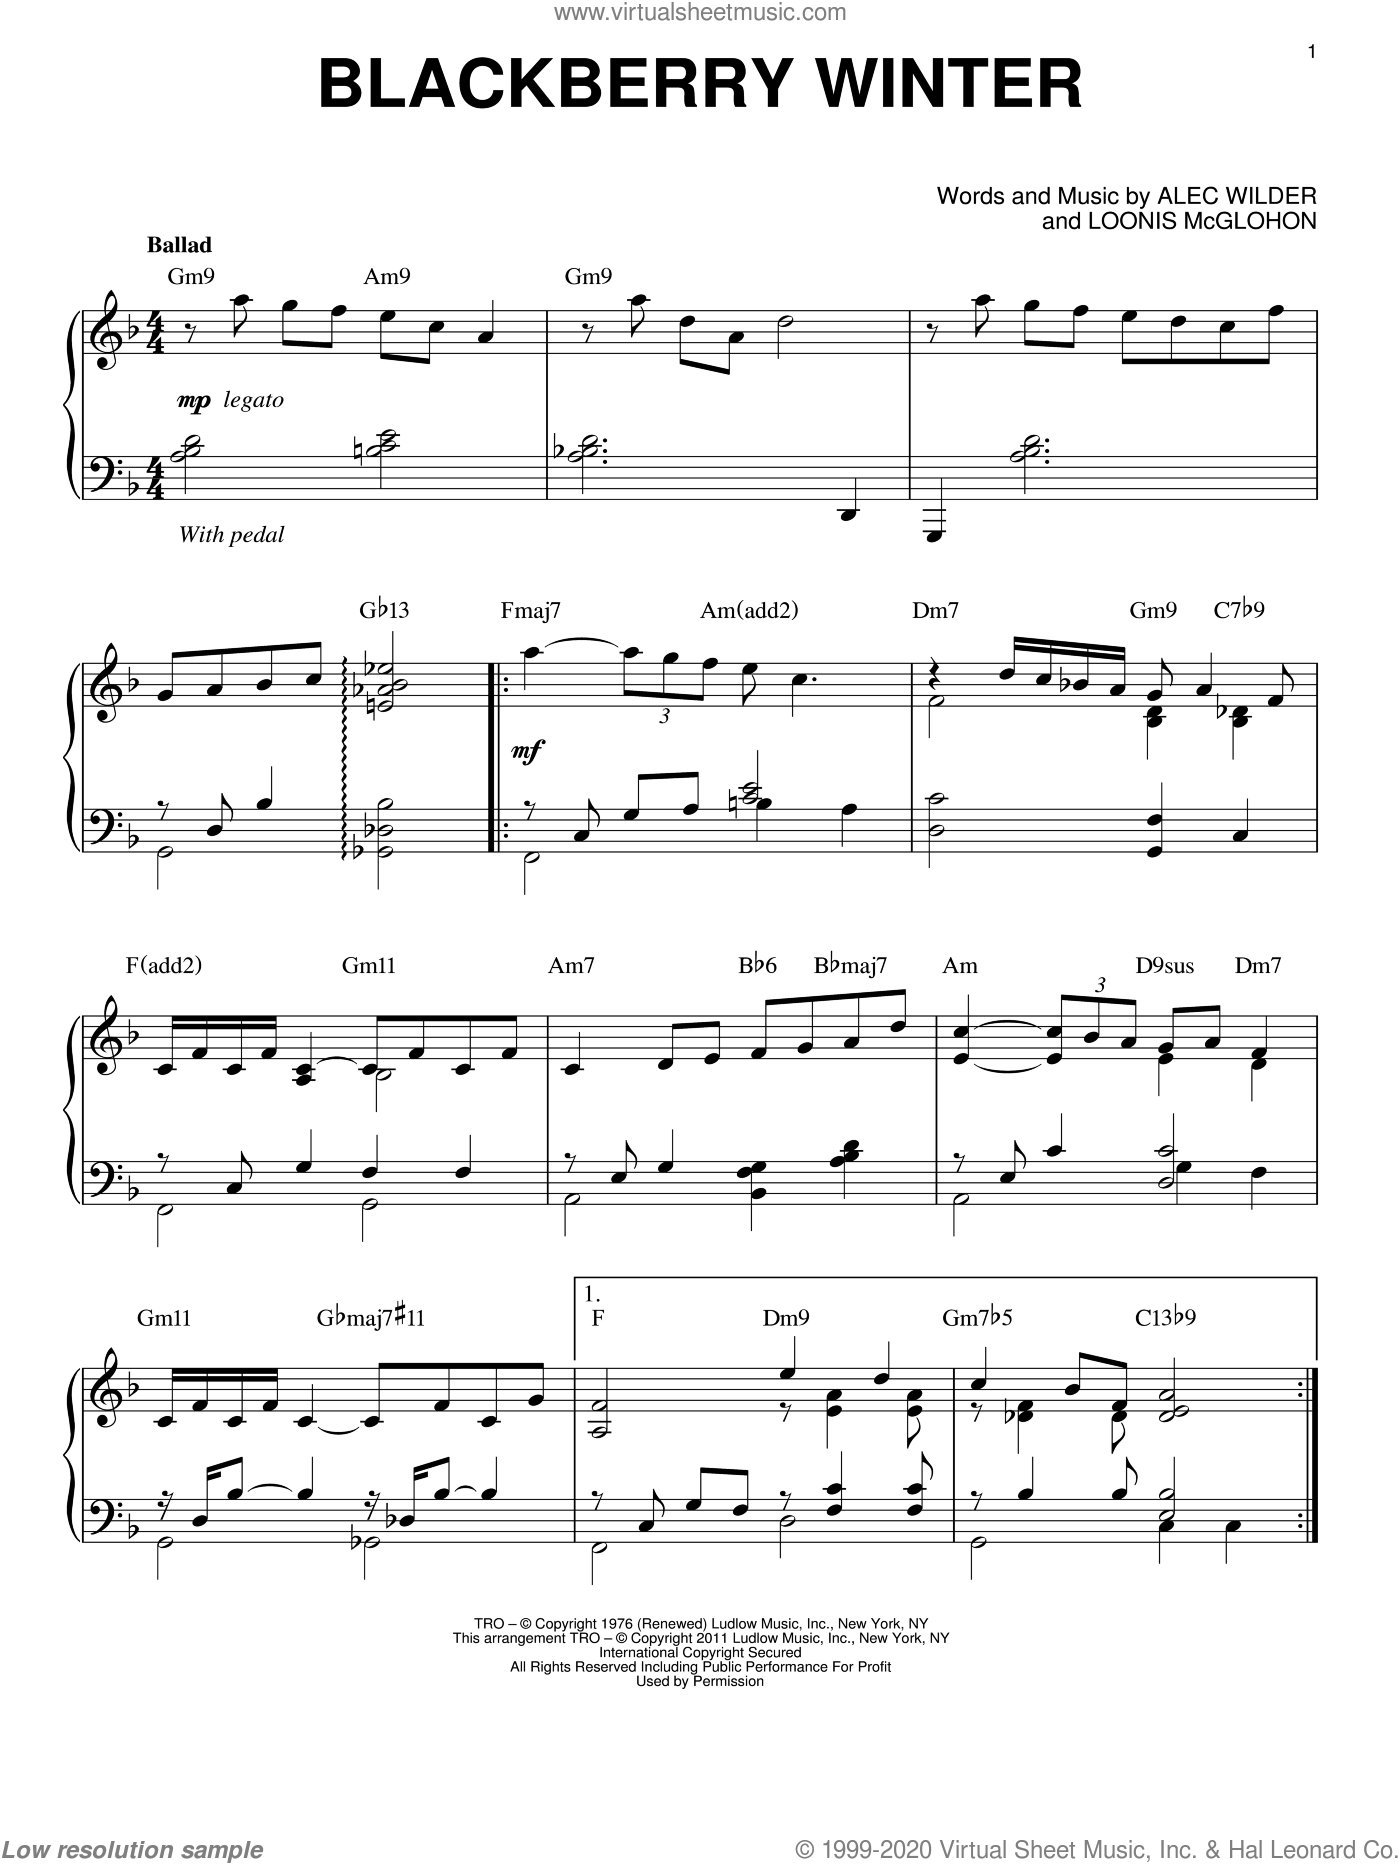 Blackberry Winter sheet music for piano solo by Alec Wilder and Loonis McGlohon, intermediate. Score Image Preview.